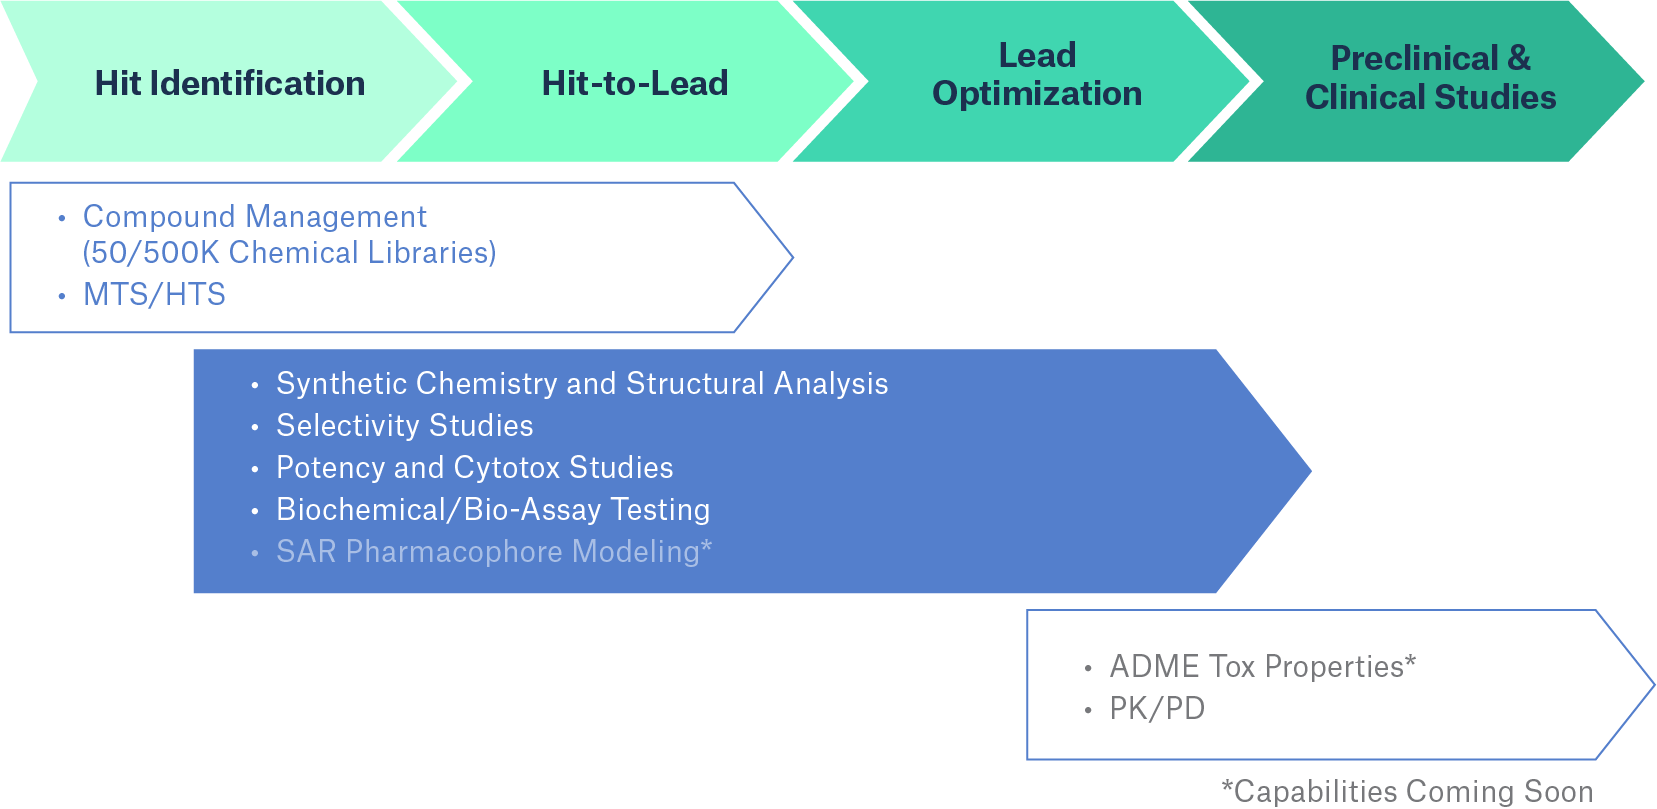 Suite of Capabilities to Advance Drug Discovery